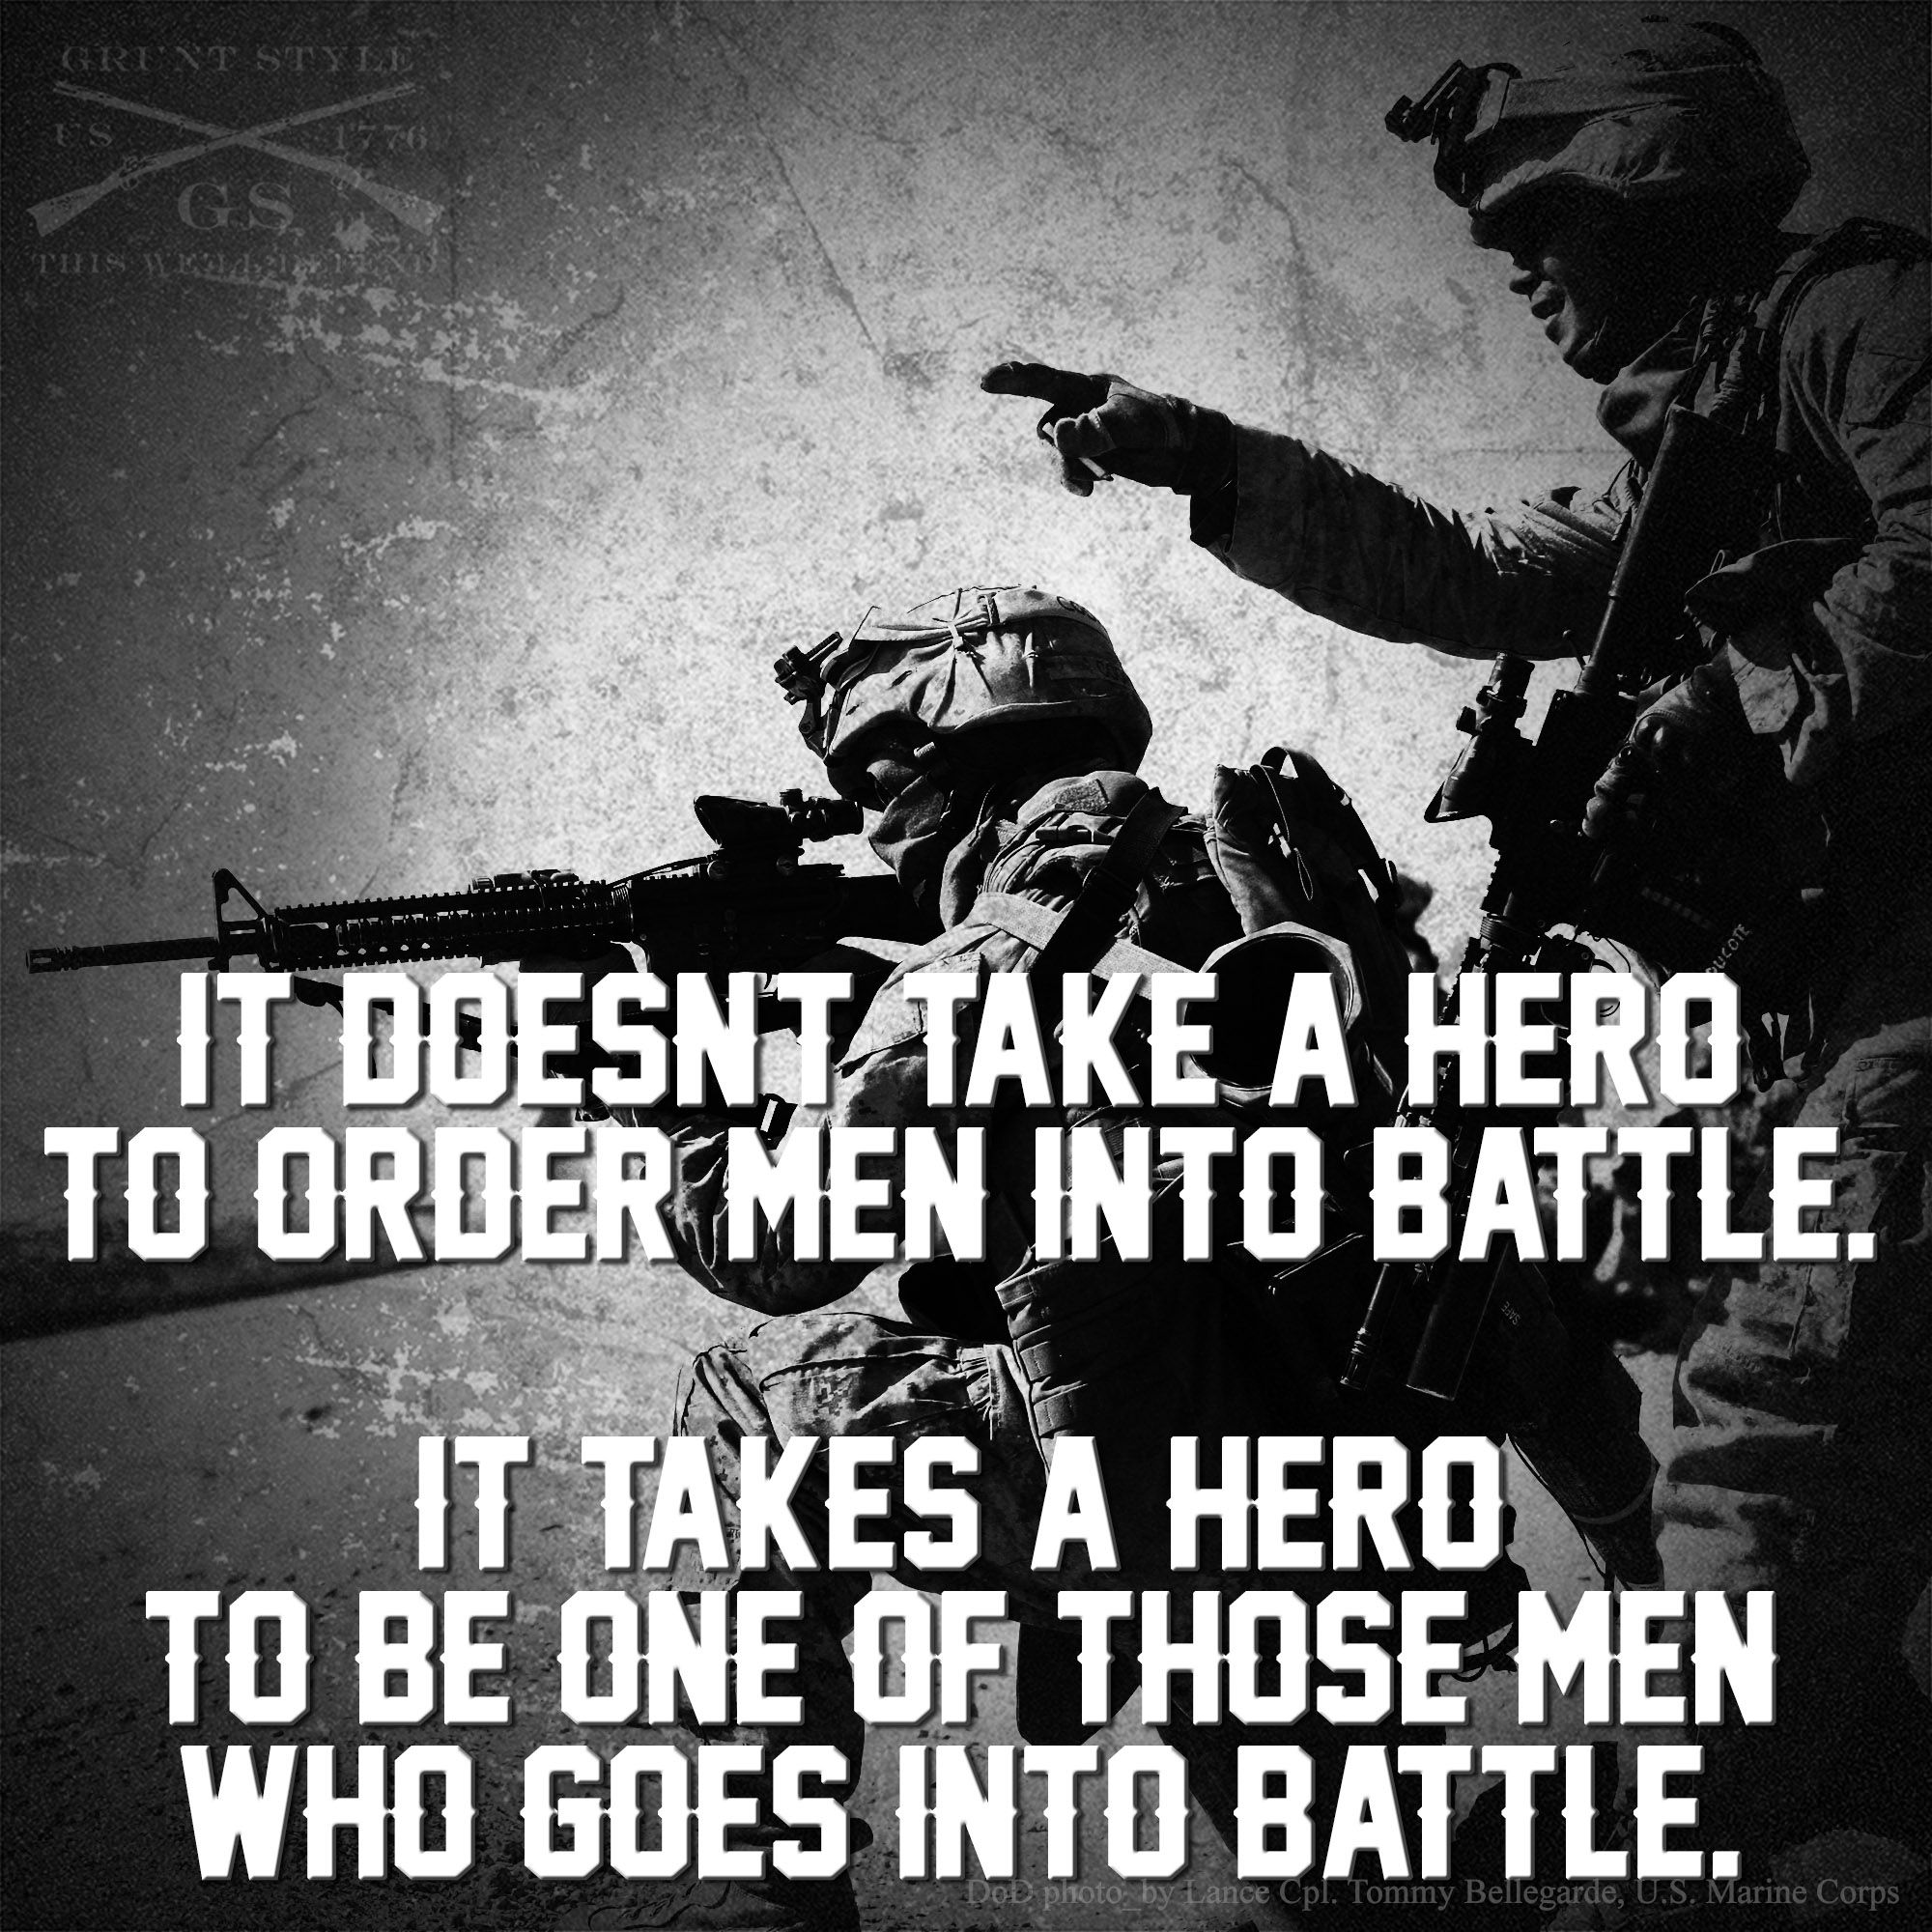 Be the one on the front lines. #hero   #veteran   #leadership   #gruntstyle    https://www.facebook.com/photo.php?fbid=853166304711129&set=a.131313850229715.20265.131303296897437&type=1&relevant_count=1